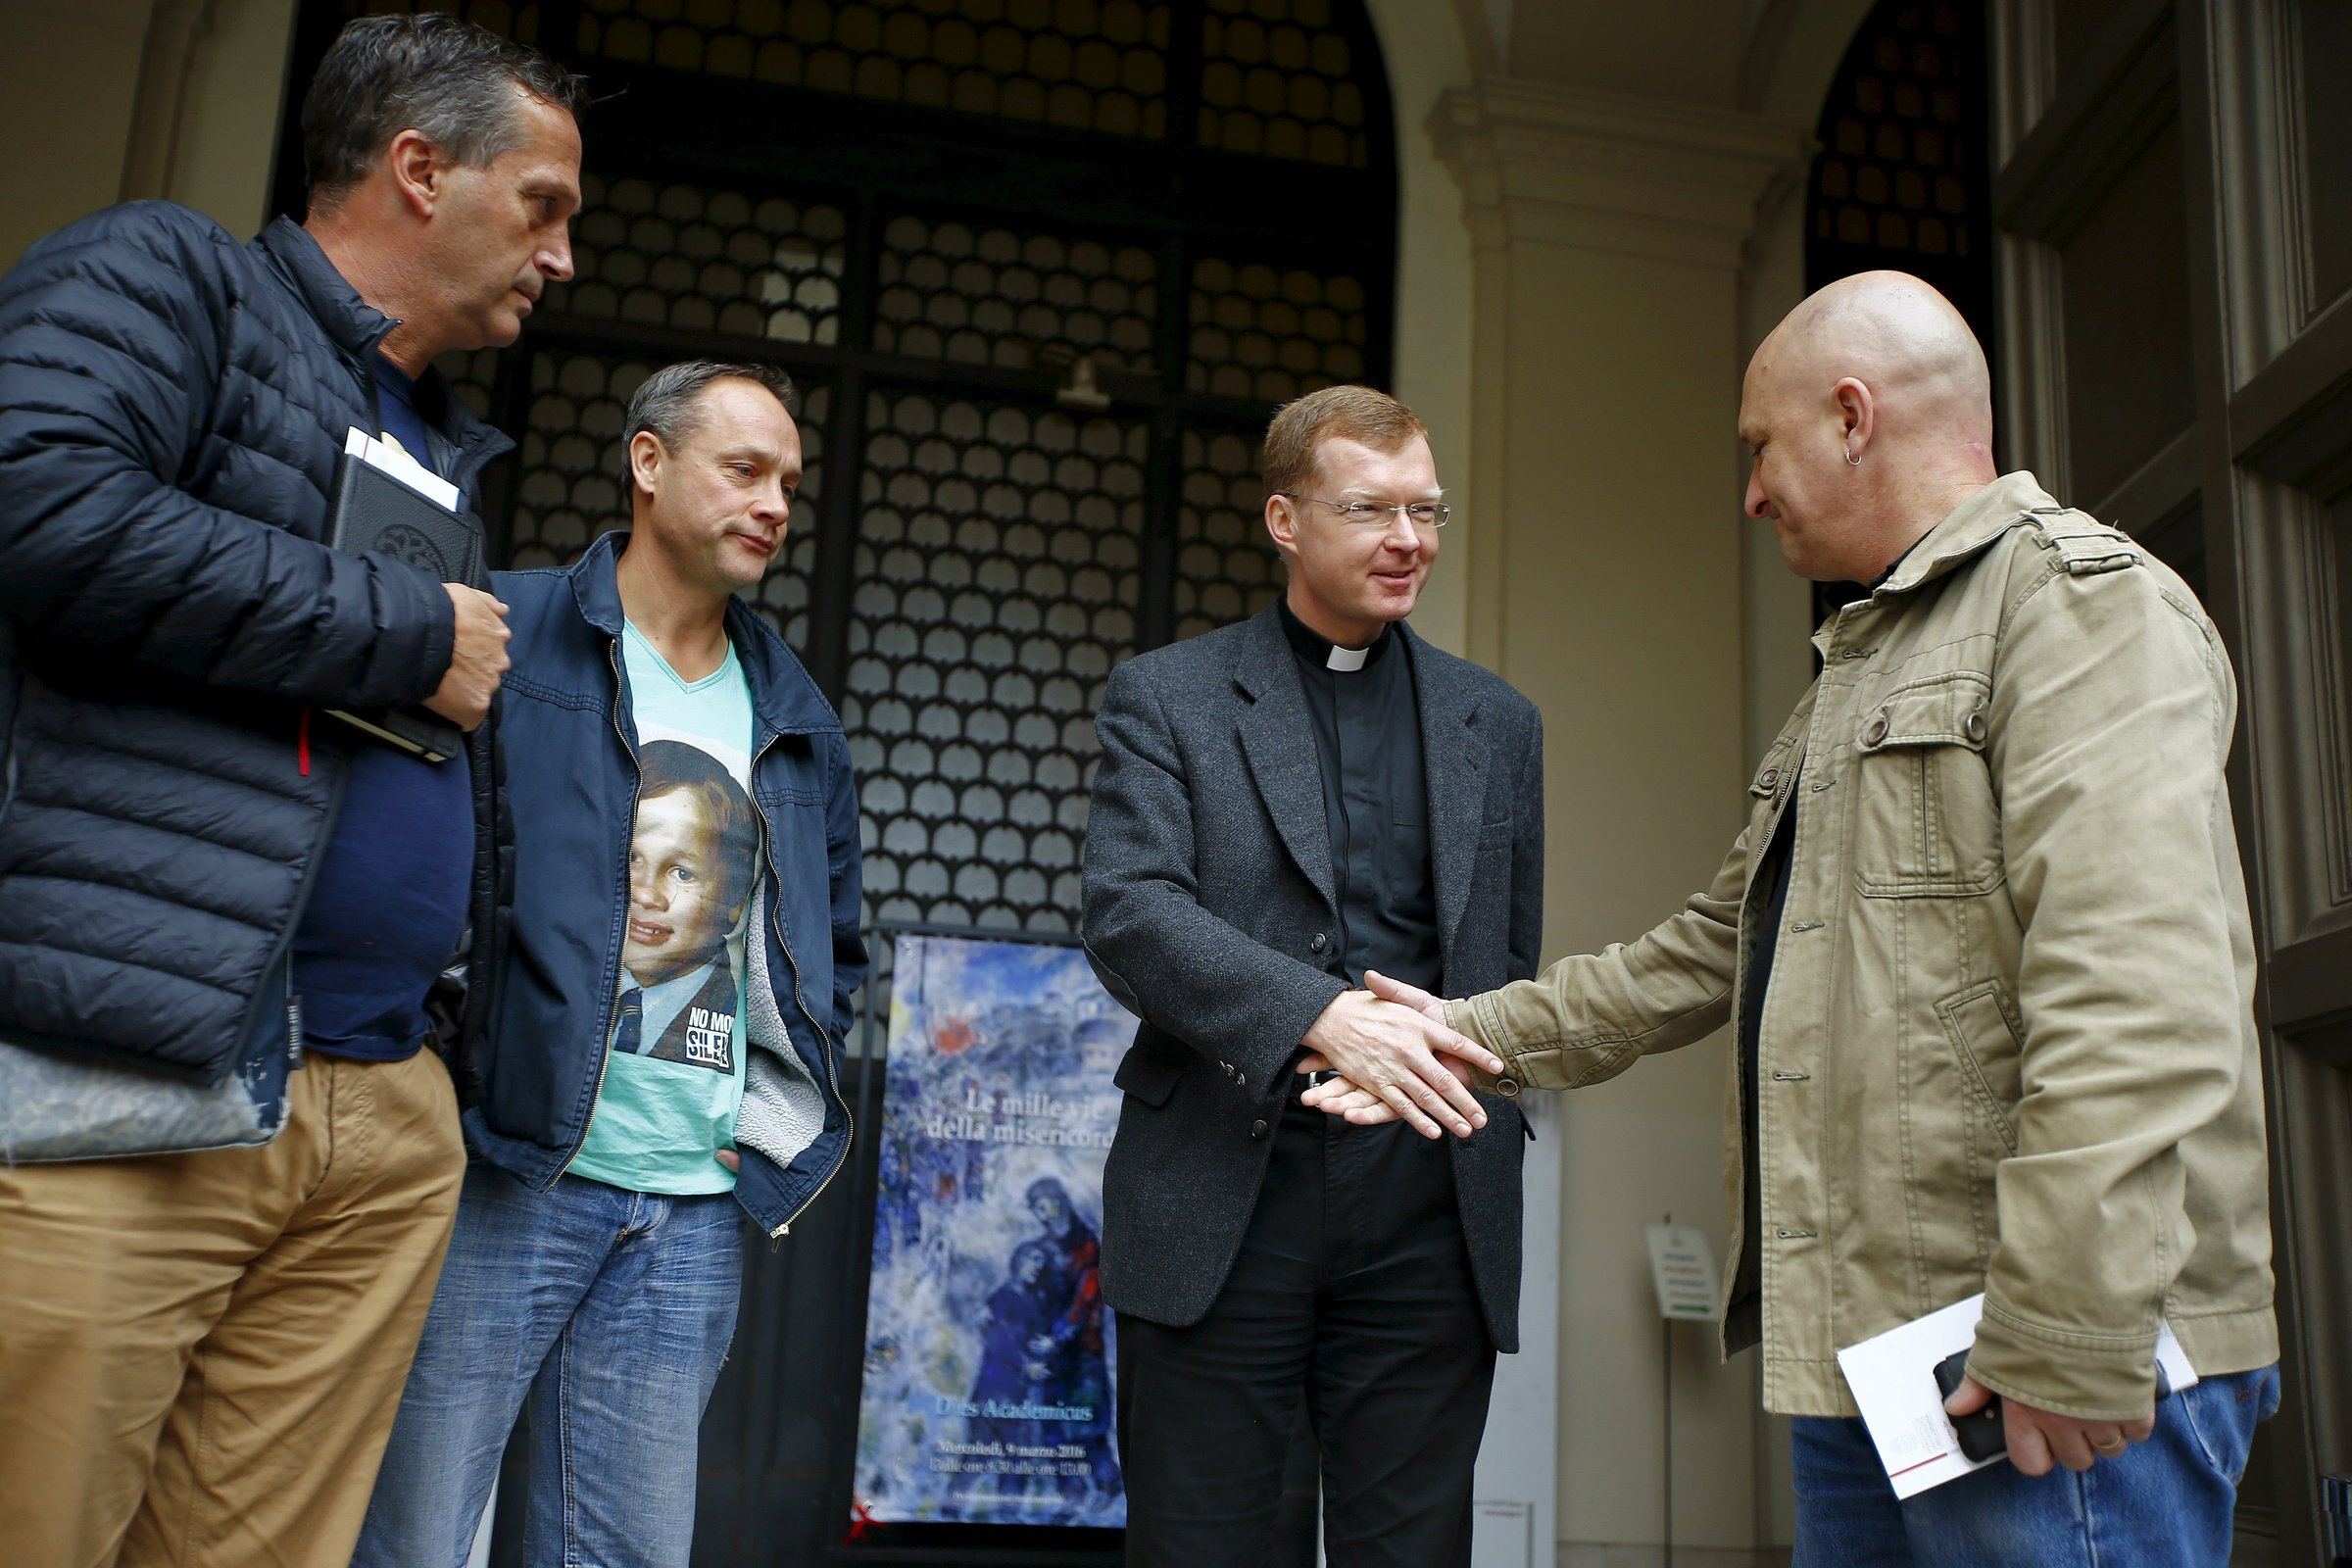 Jesuit Father Hans Zollner, a leading Vatican official dealing with clergy sexual abuse in the church, is pictured in a file photo greeting Andrew Collins, David Ridsdale and Peter Blenkiron at the Pontifical Gregorian University in Rome. The three men said they were child sex abuse victims in Australia. (Credit: Tony Gentile / Reuters via CNS.)